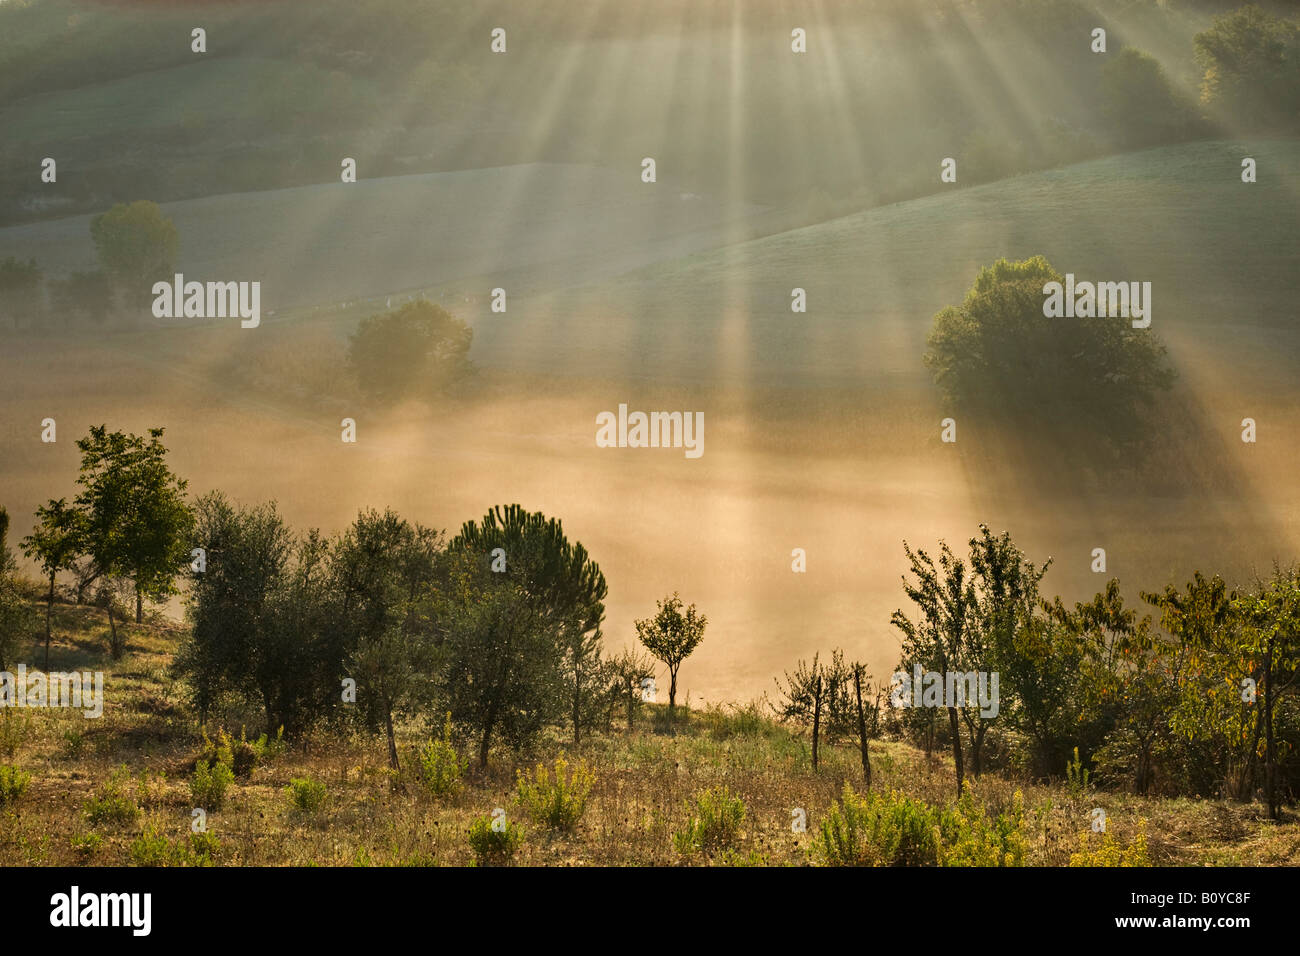 Italy, Tuscany, Olive trees in morning mist - Stock Image